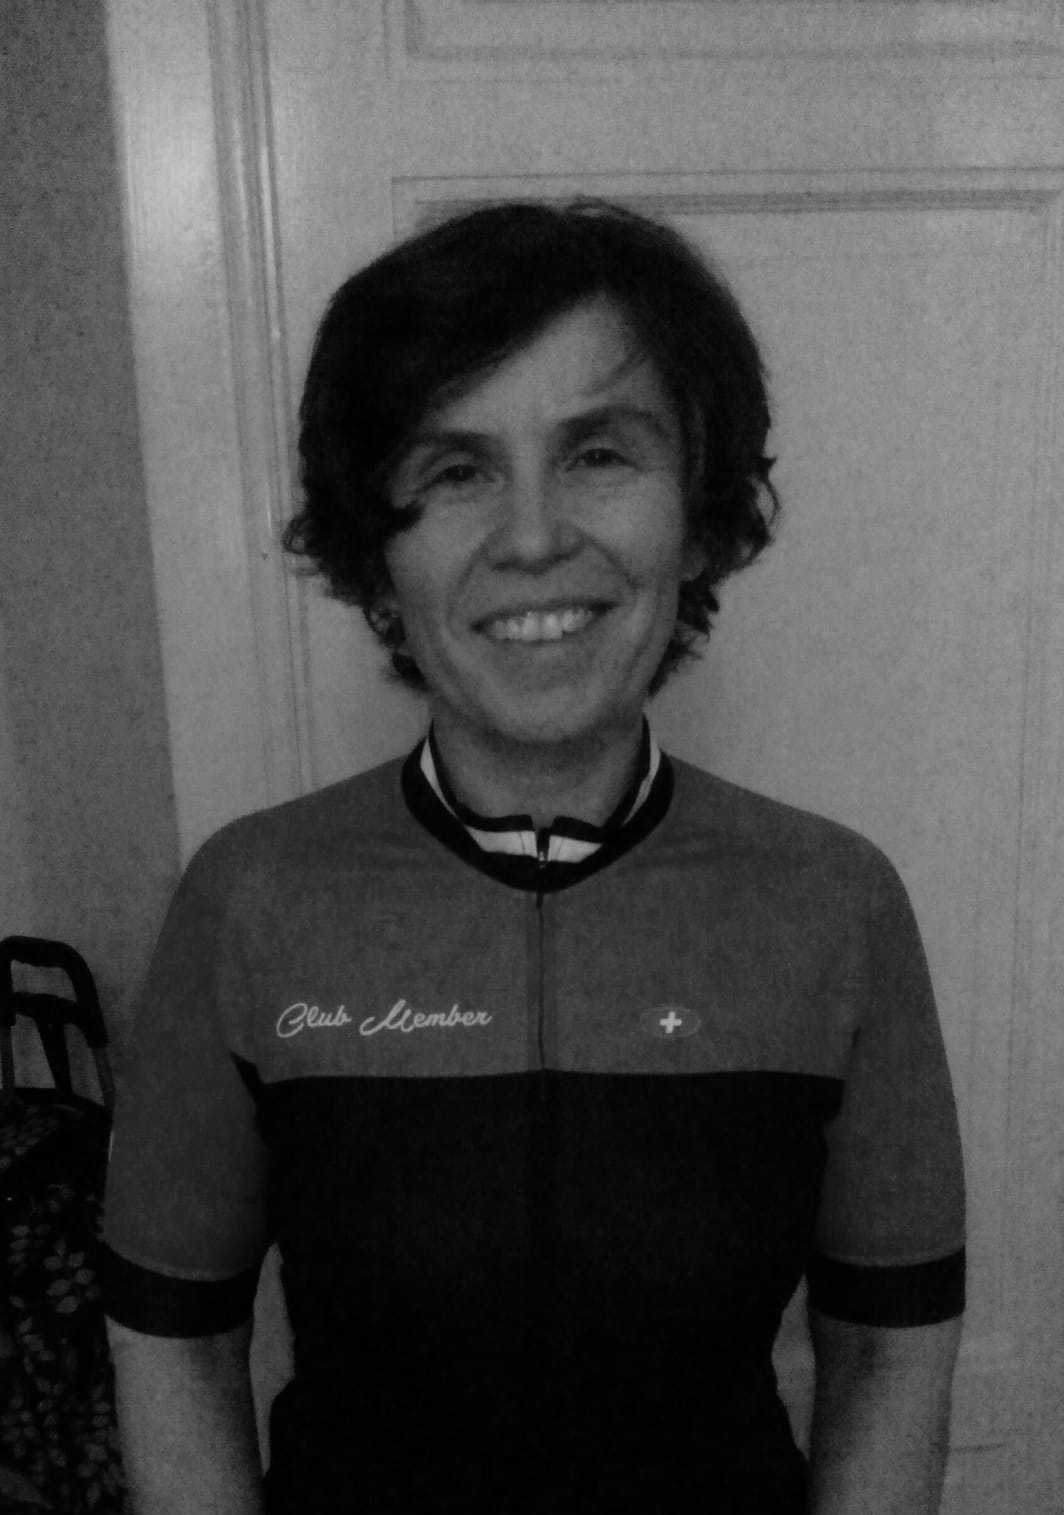 Nathalie Carter - Ride Leader: 4 years